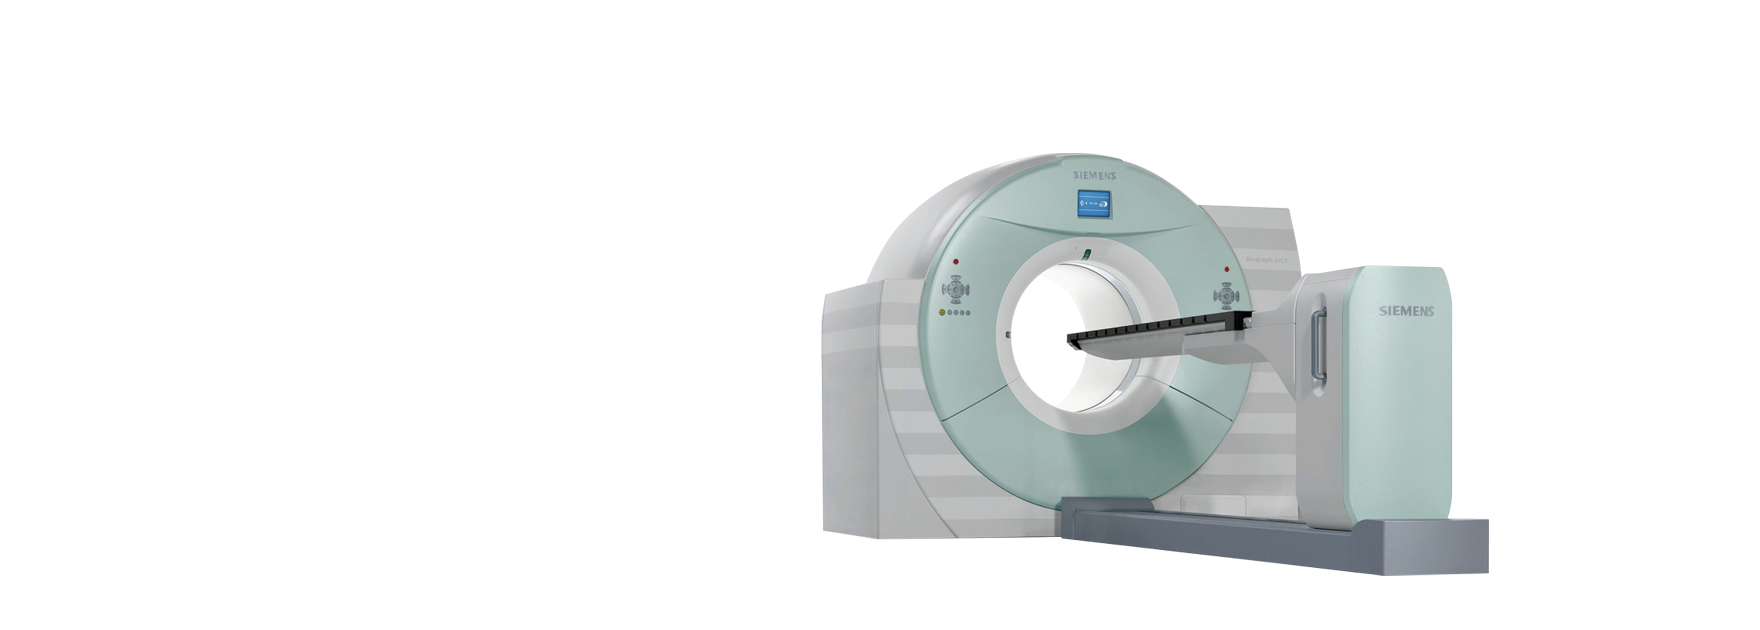 vitalim diagnostic imaging